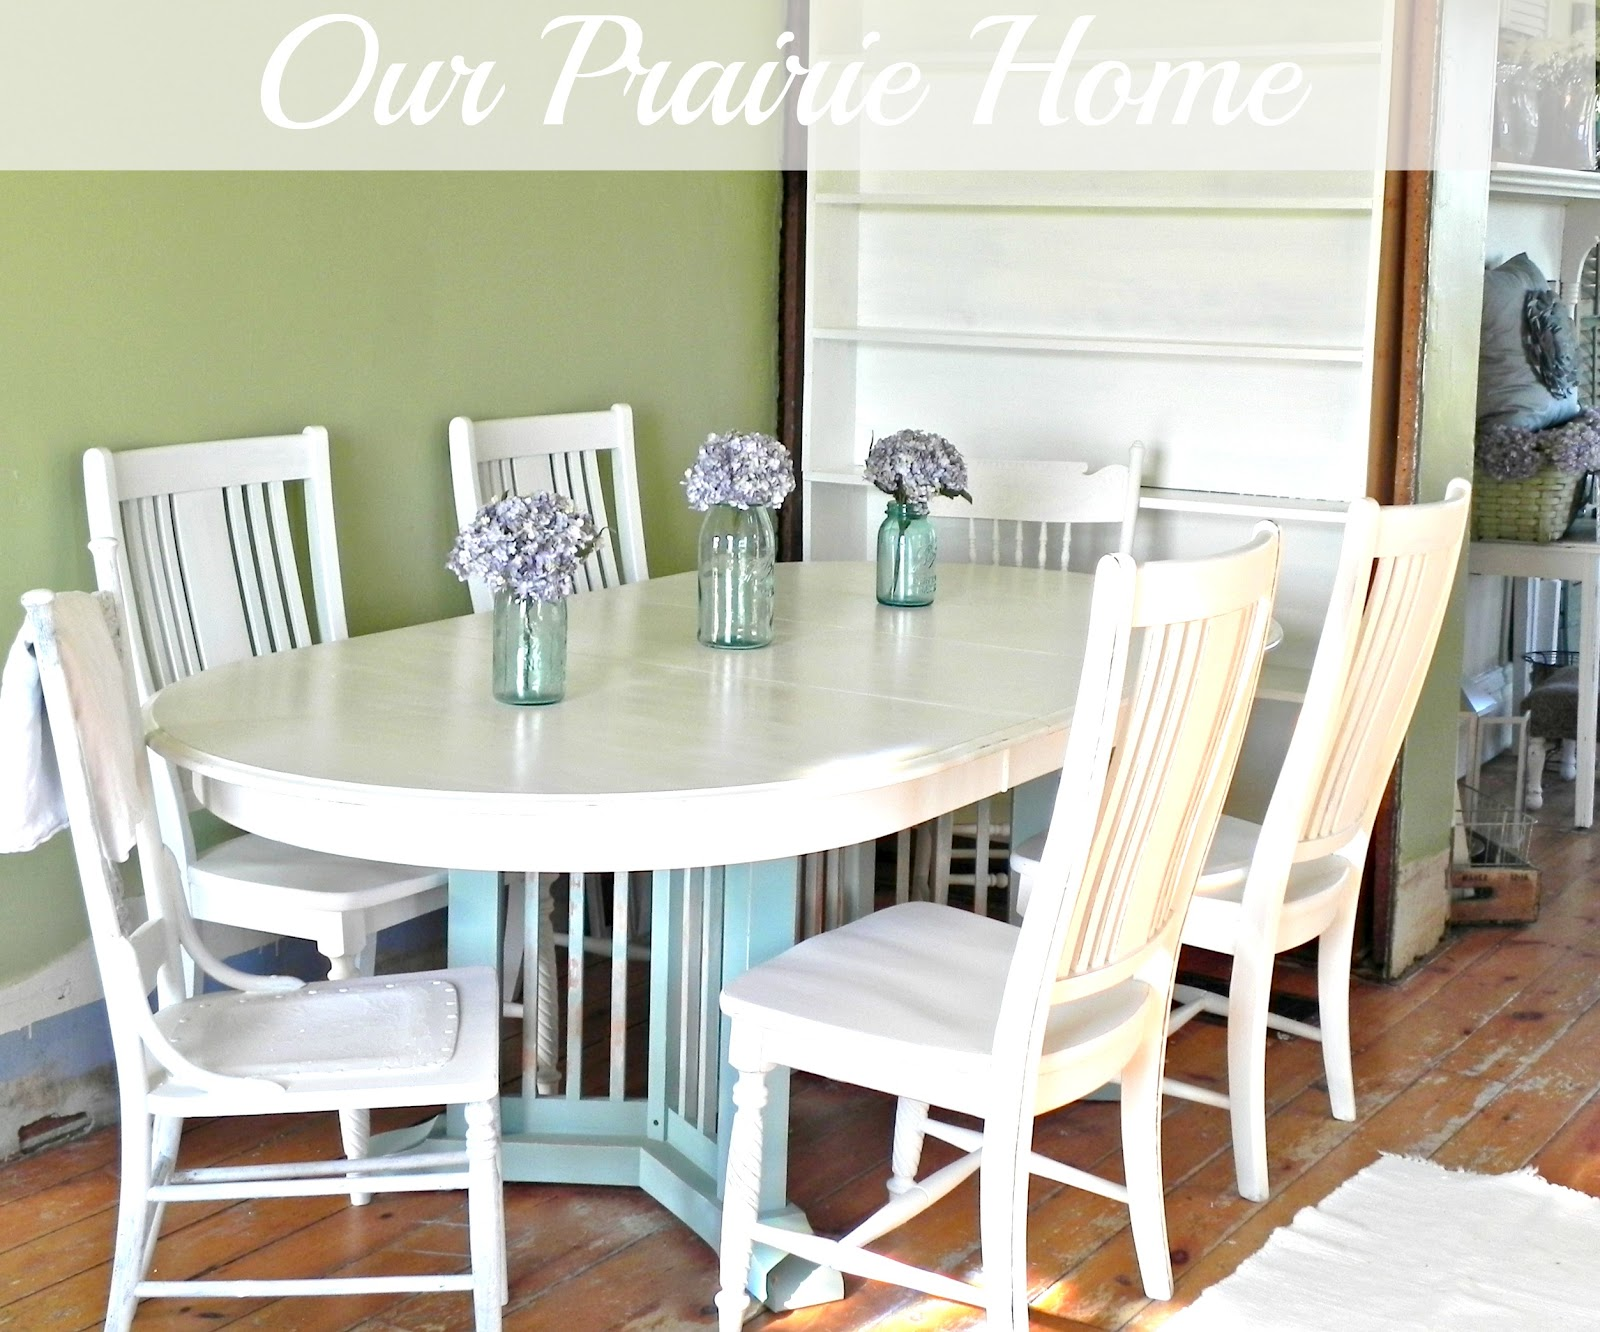 Chalk painted kitchen tables - Our Prairie Home Homemade Chalk Paint Recipe Chalk Paint Kitchen Table